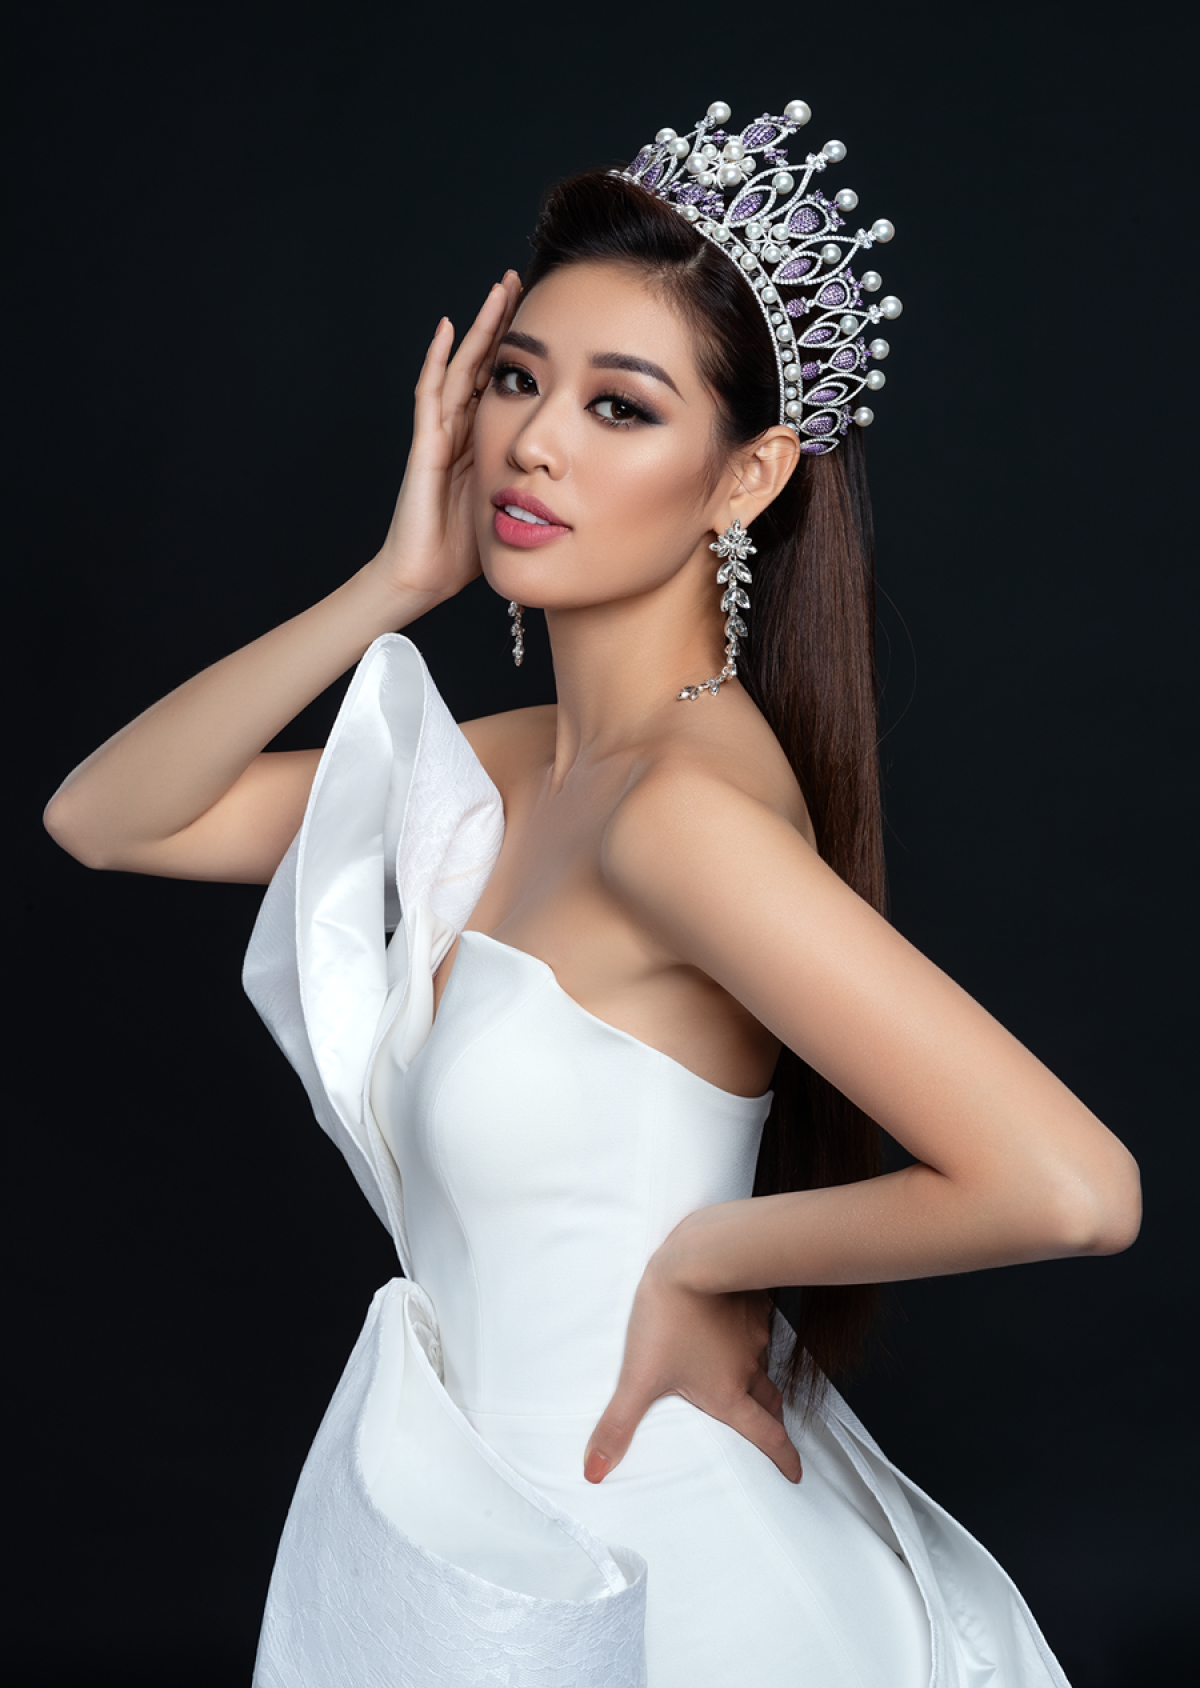 Whilst this year's Miss Universe 2020 pageant was canceled due to the impact of the novel coronavirus (COVID-19) pandemic, it has been rearranged for next year, with Khanh Van set to represent Vietnam in the beauty contest. The local beauty stands at 1.76 metres tall and measures 83-60-91. (Photo: Nguyen Long)